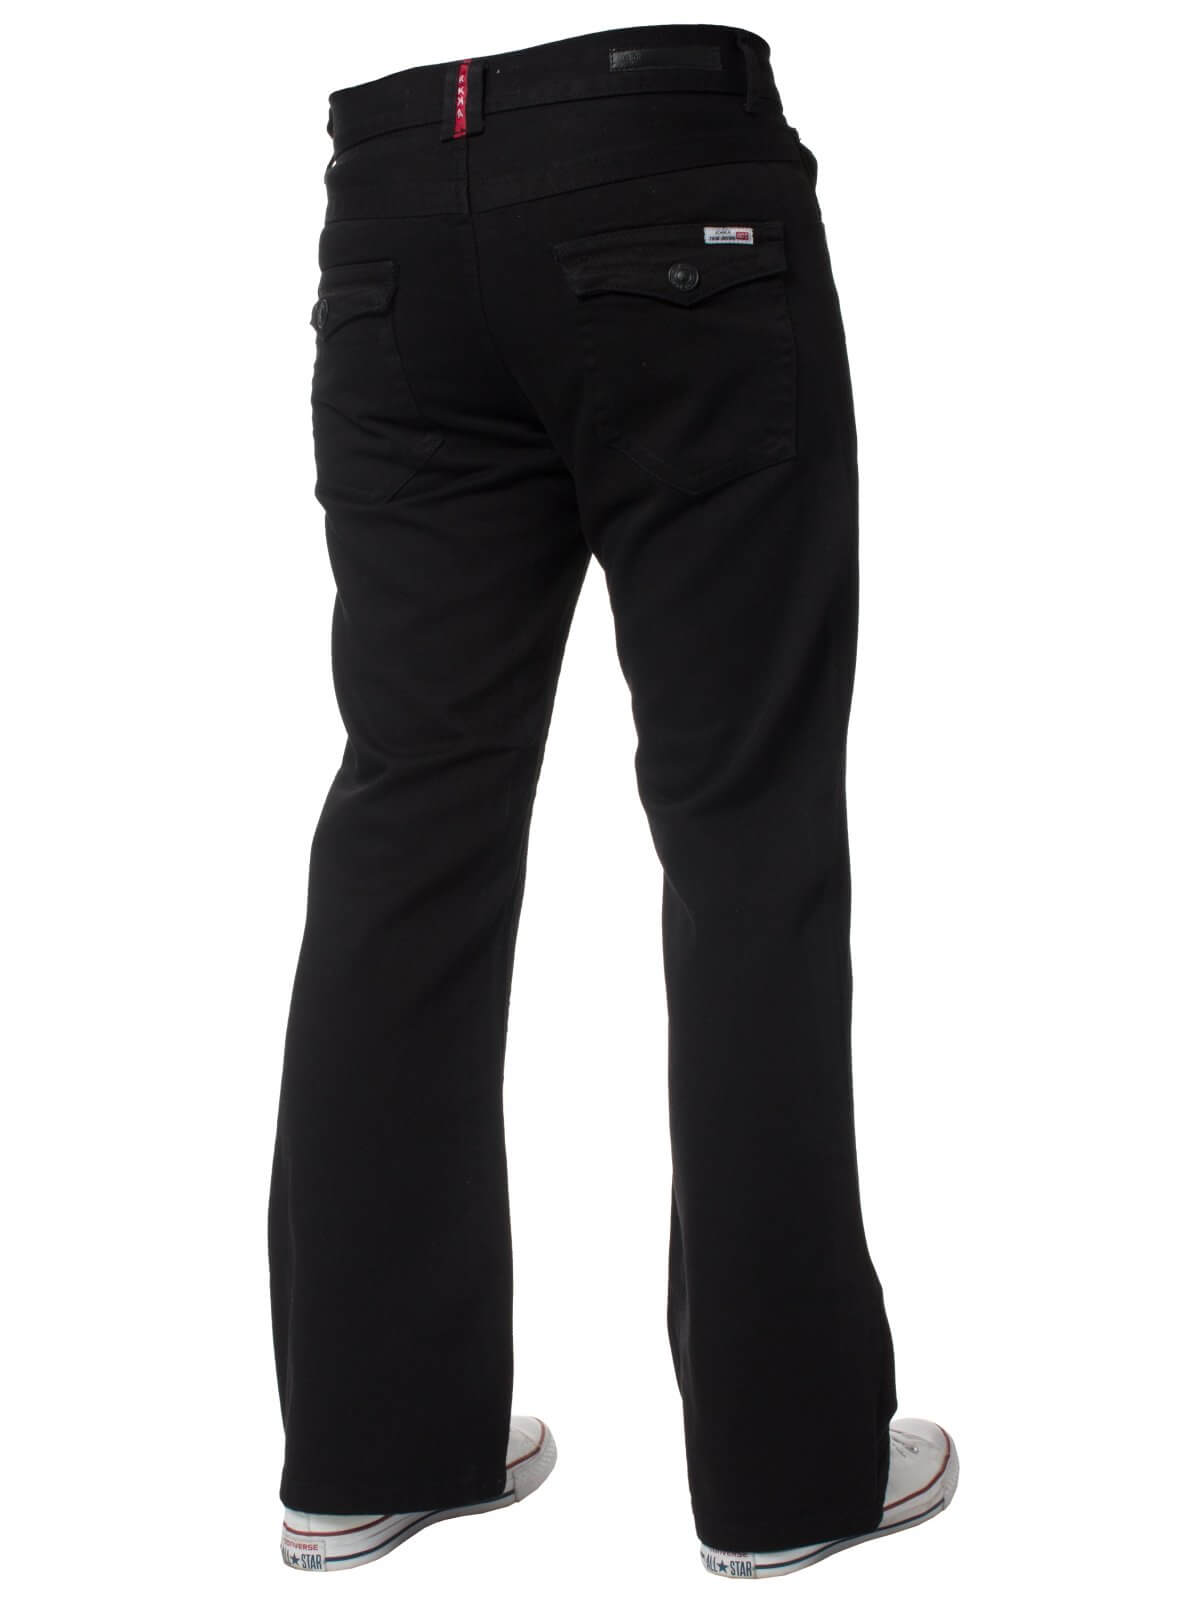 Men's Black Boot Cut Denim Jeans A42 | APT Designer Menswear